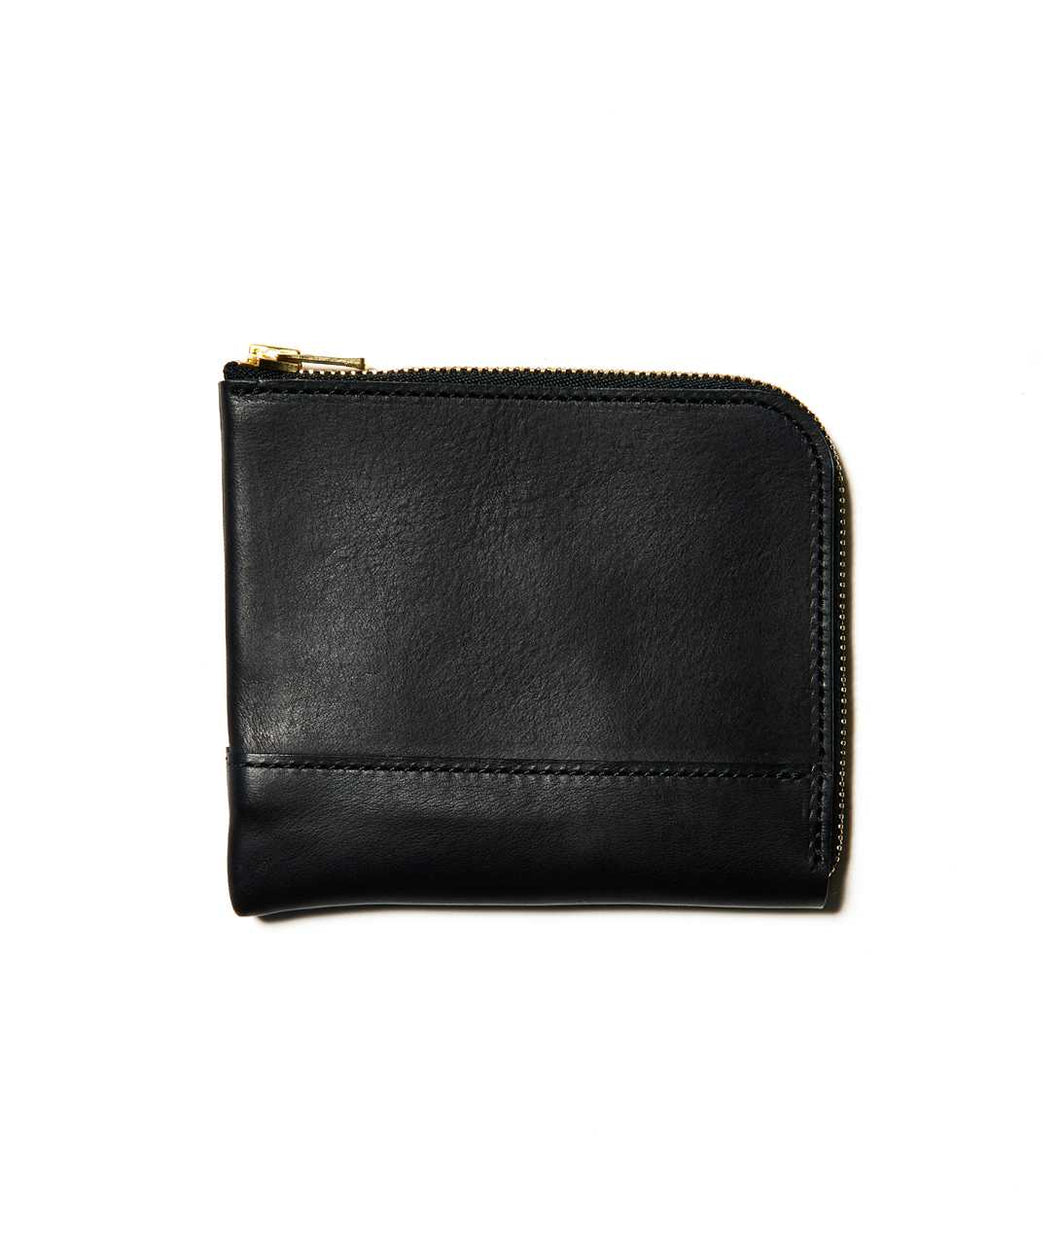 〈LIM DESIGN〉L Zip Small Wallet / Lジップスモールウォレット (BLACK)